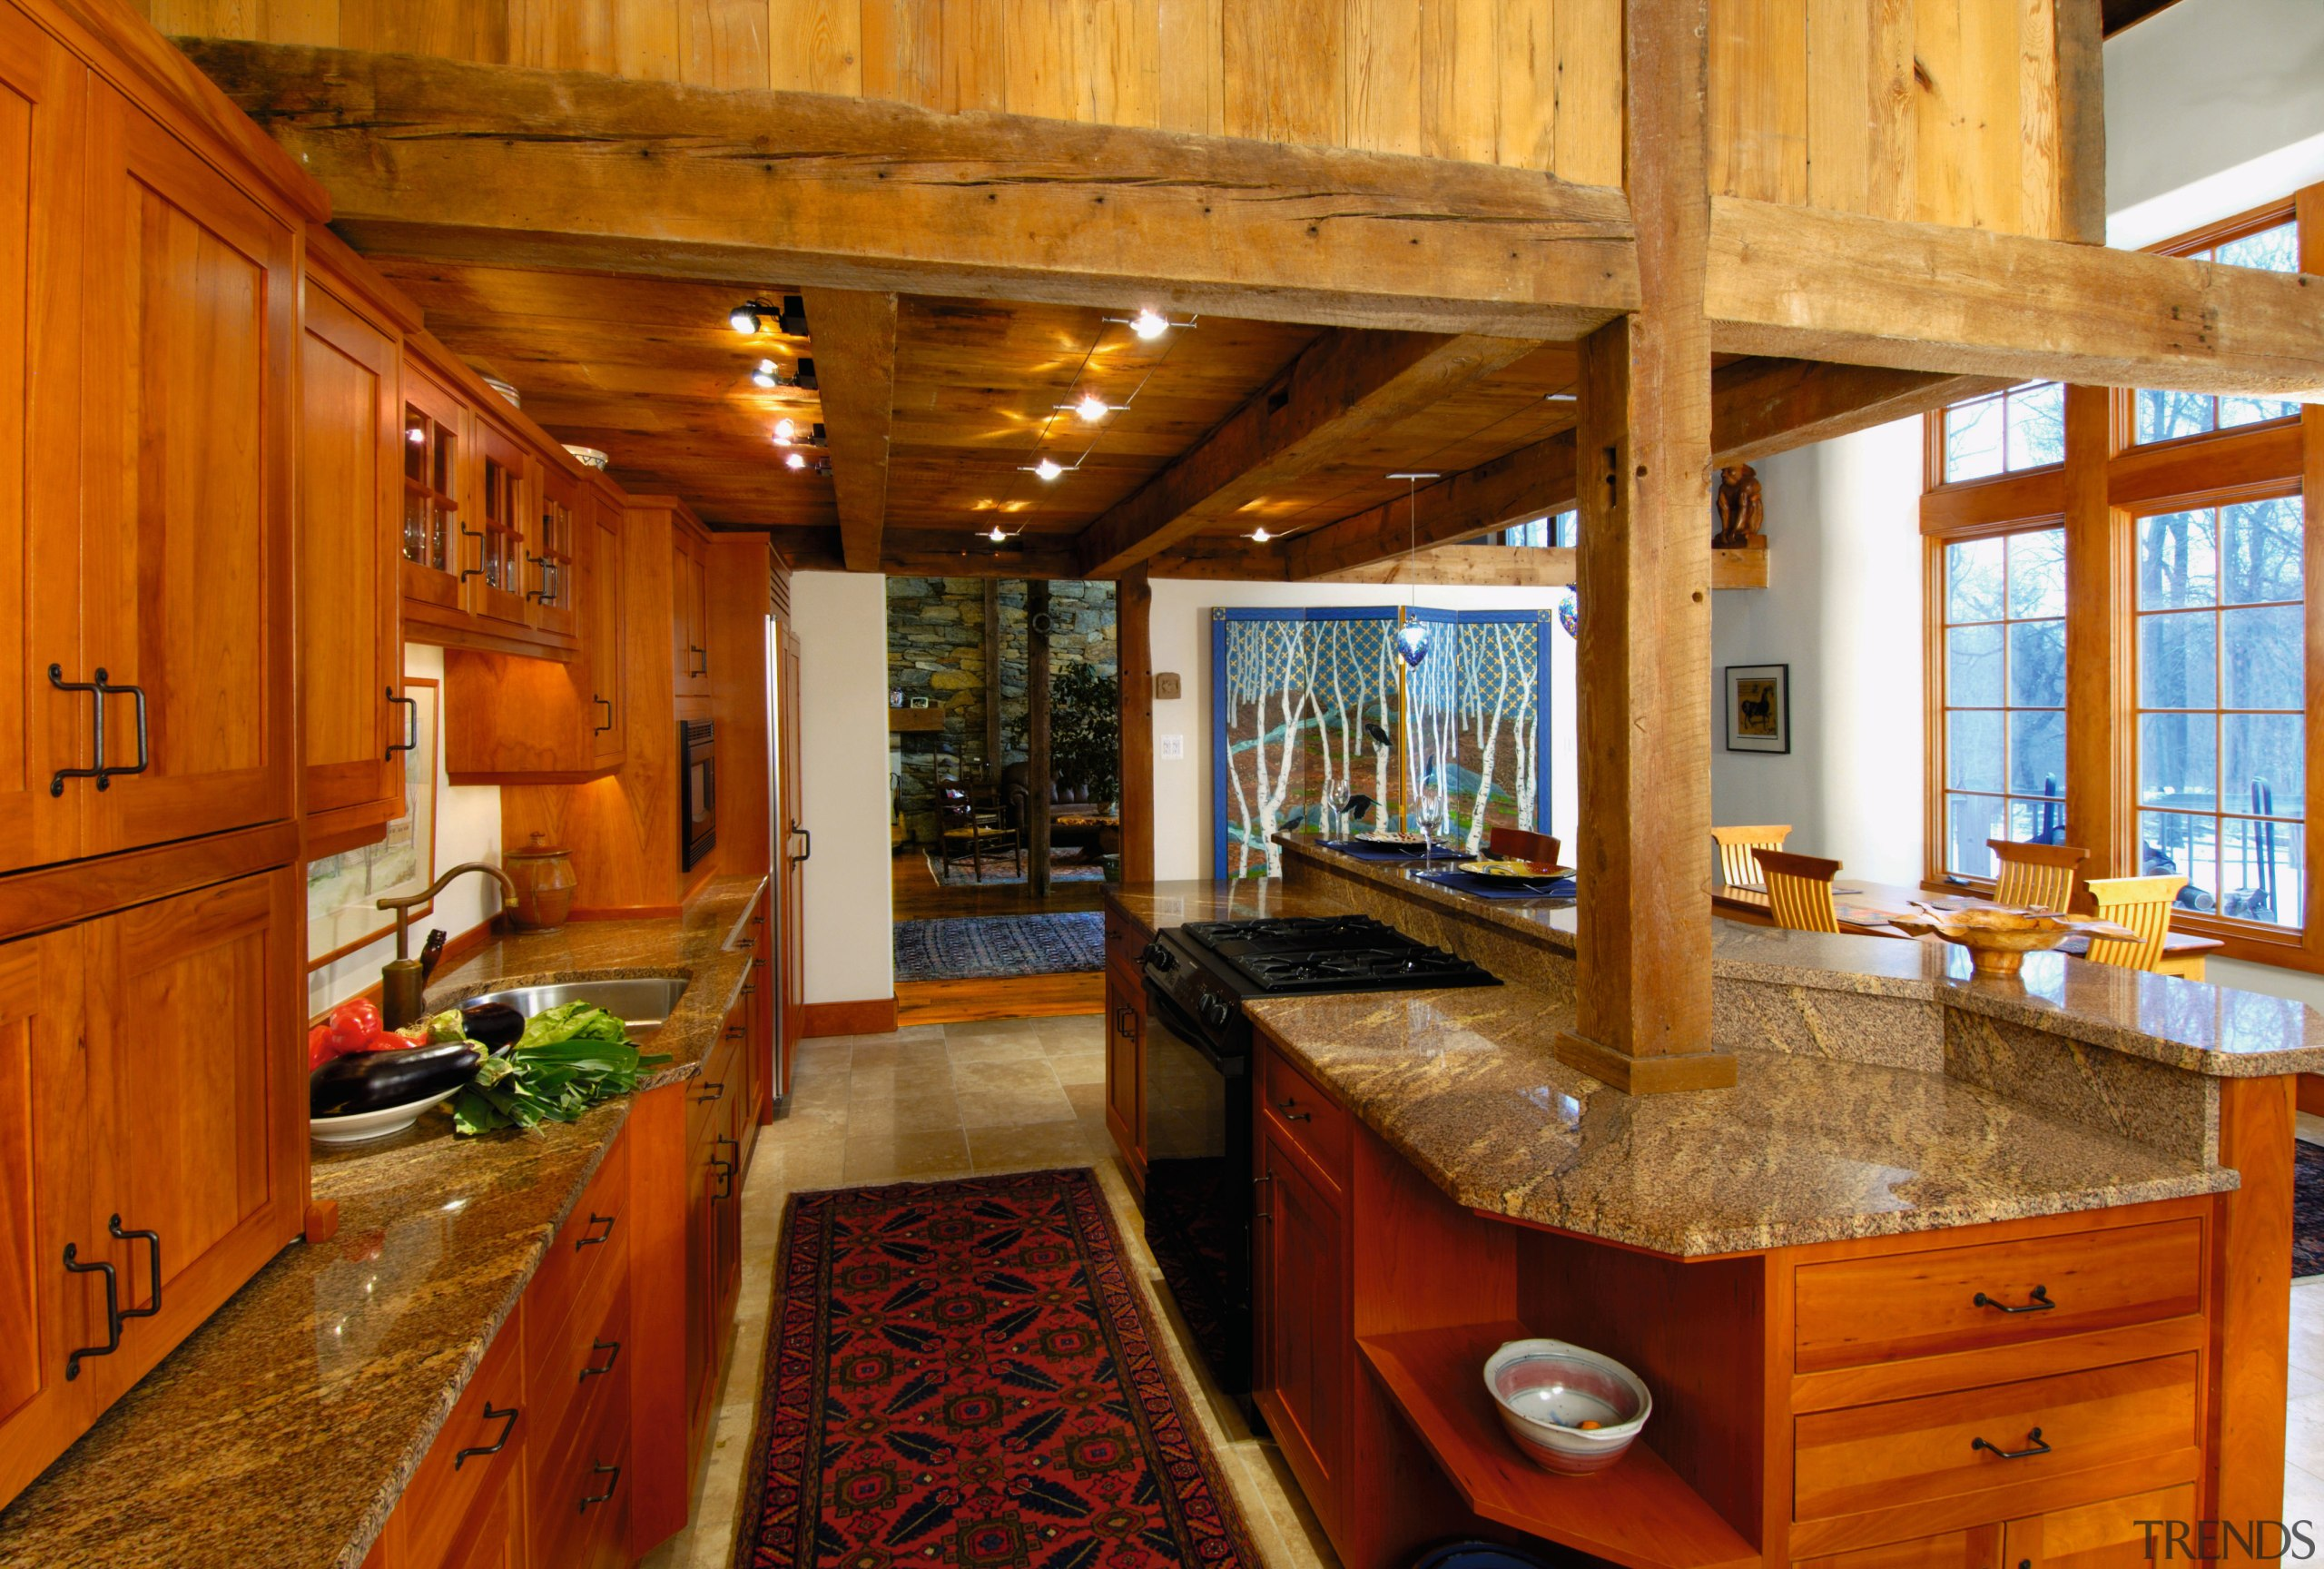 view of this kitchen that sits under the cabinetry, countertop, estate, hardwood, home, interior design, kitchen, real estate, room, wood, brown